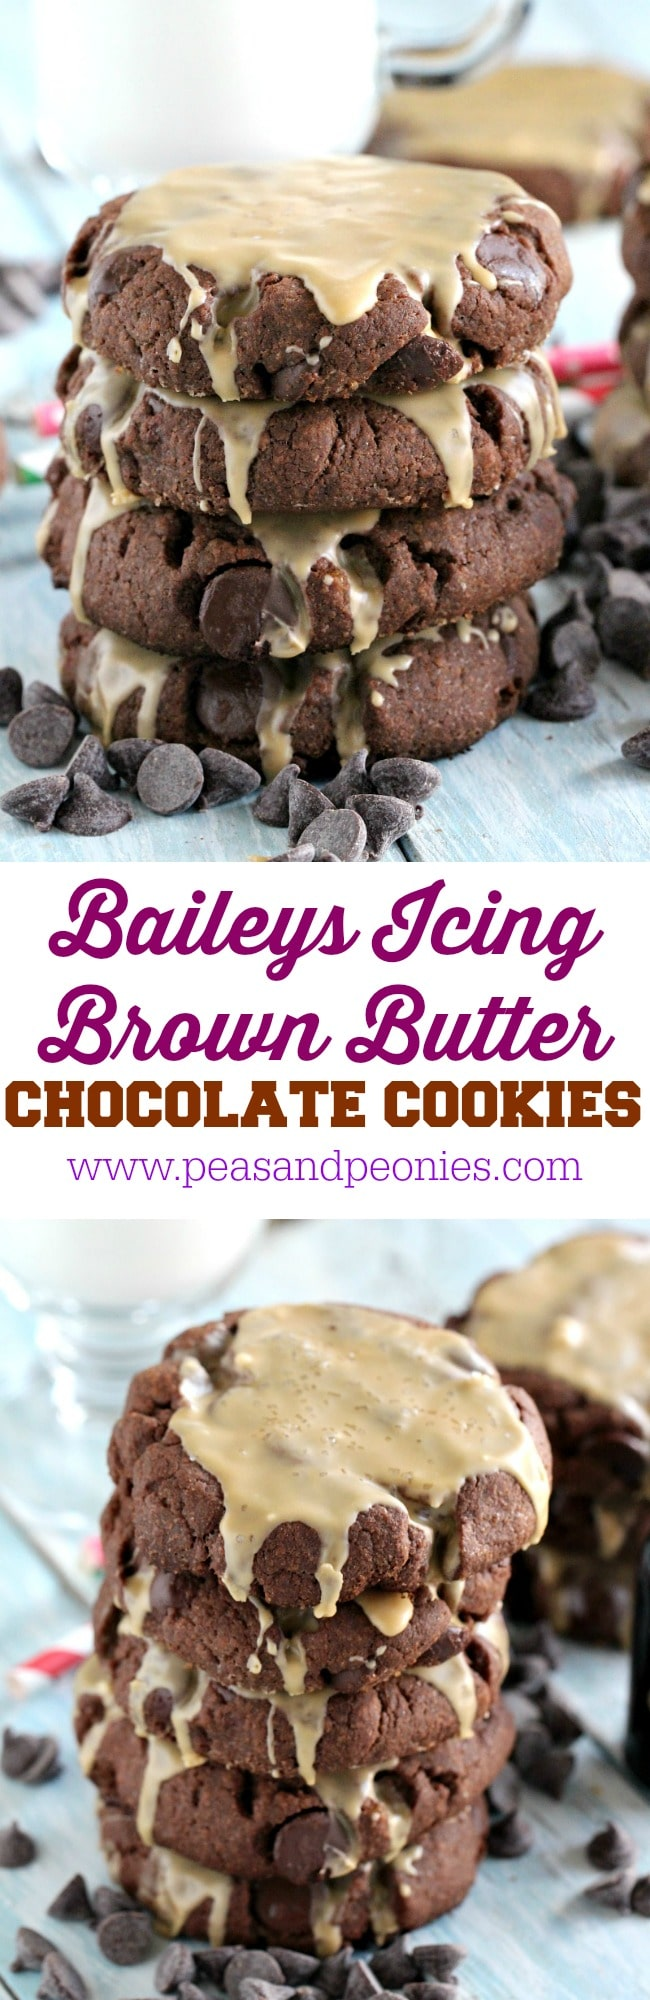 Chocolate Brown Butter Cookies have a caramel undertone, are stuffed with chocolate chips and topped with a Chocolate Cherry Baileys Icing and sea salt.